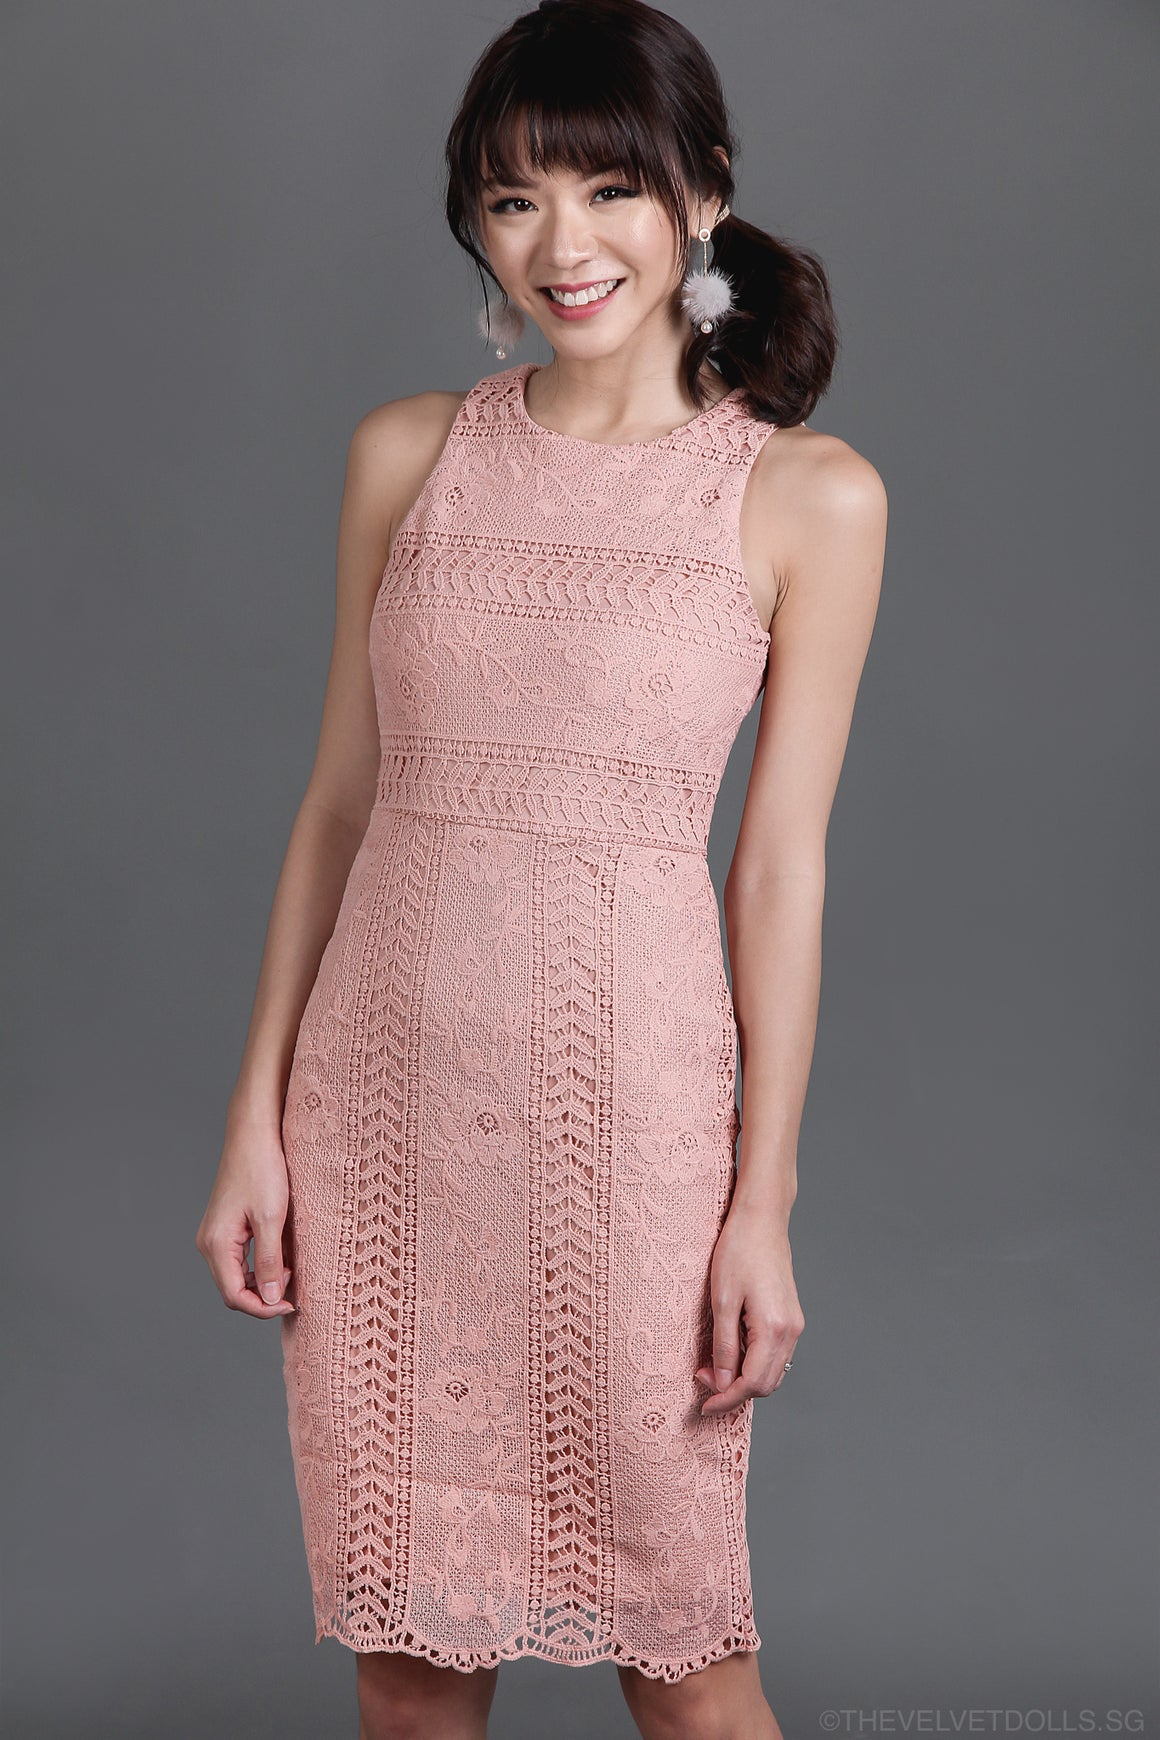 In Favour of Lace Fit Dress in Nude Pink